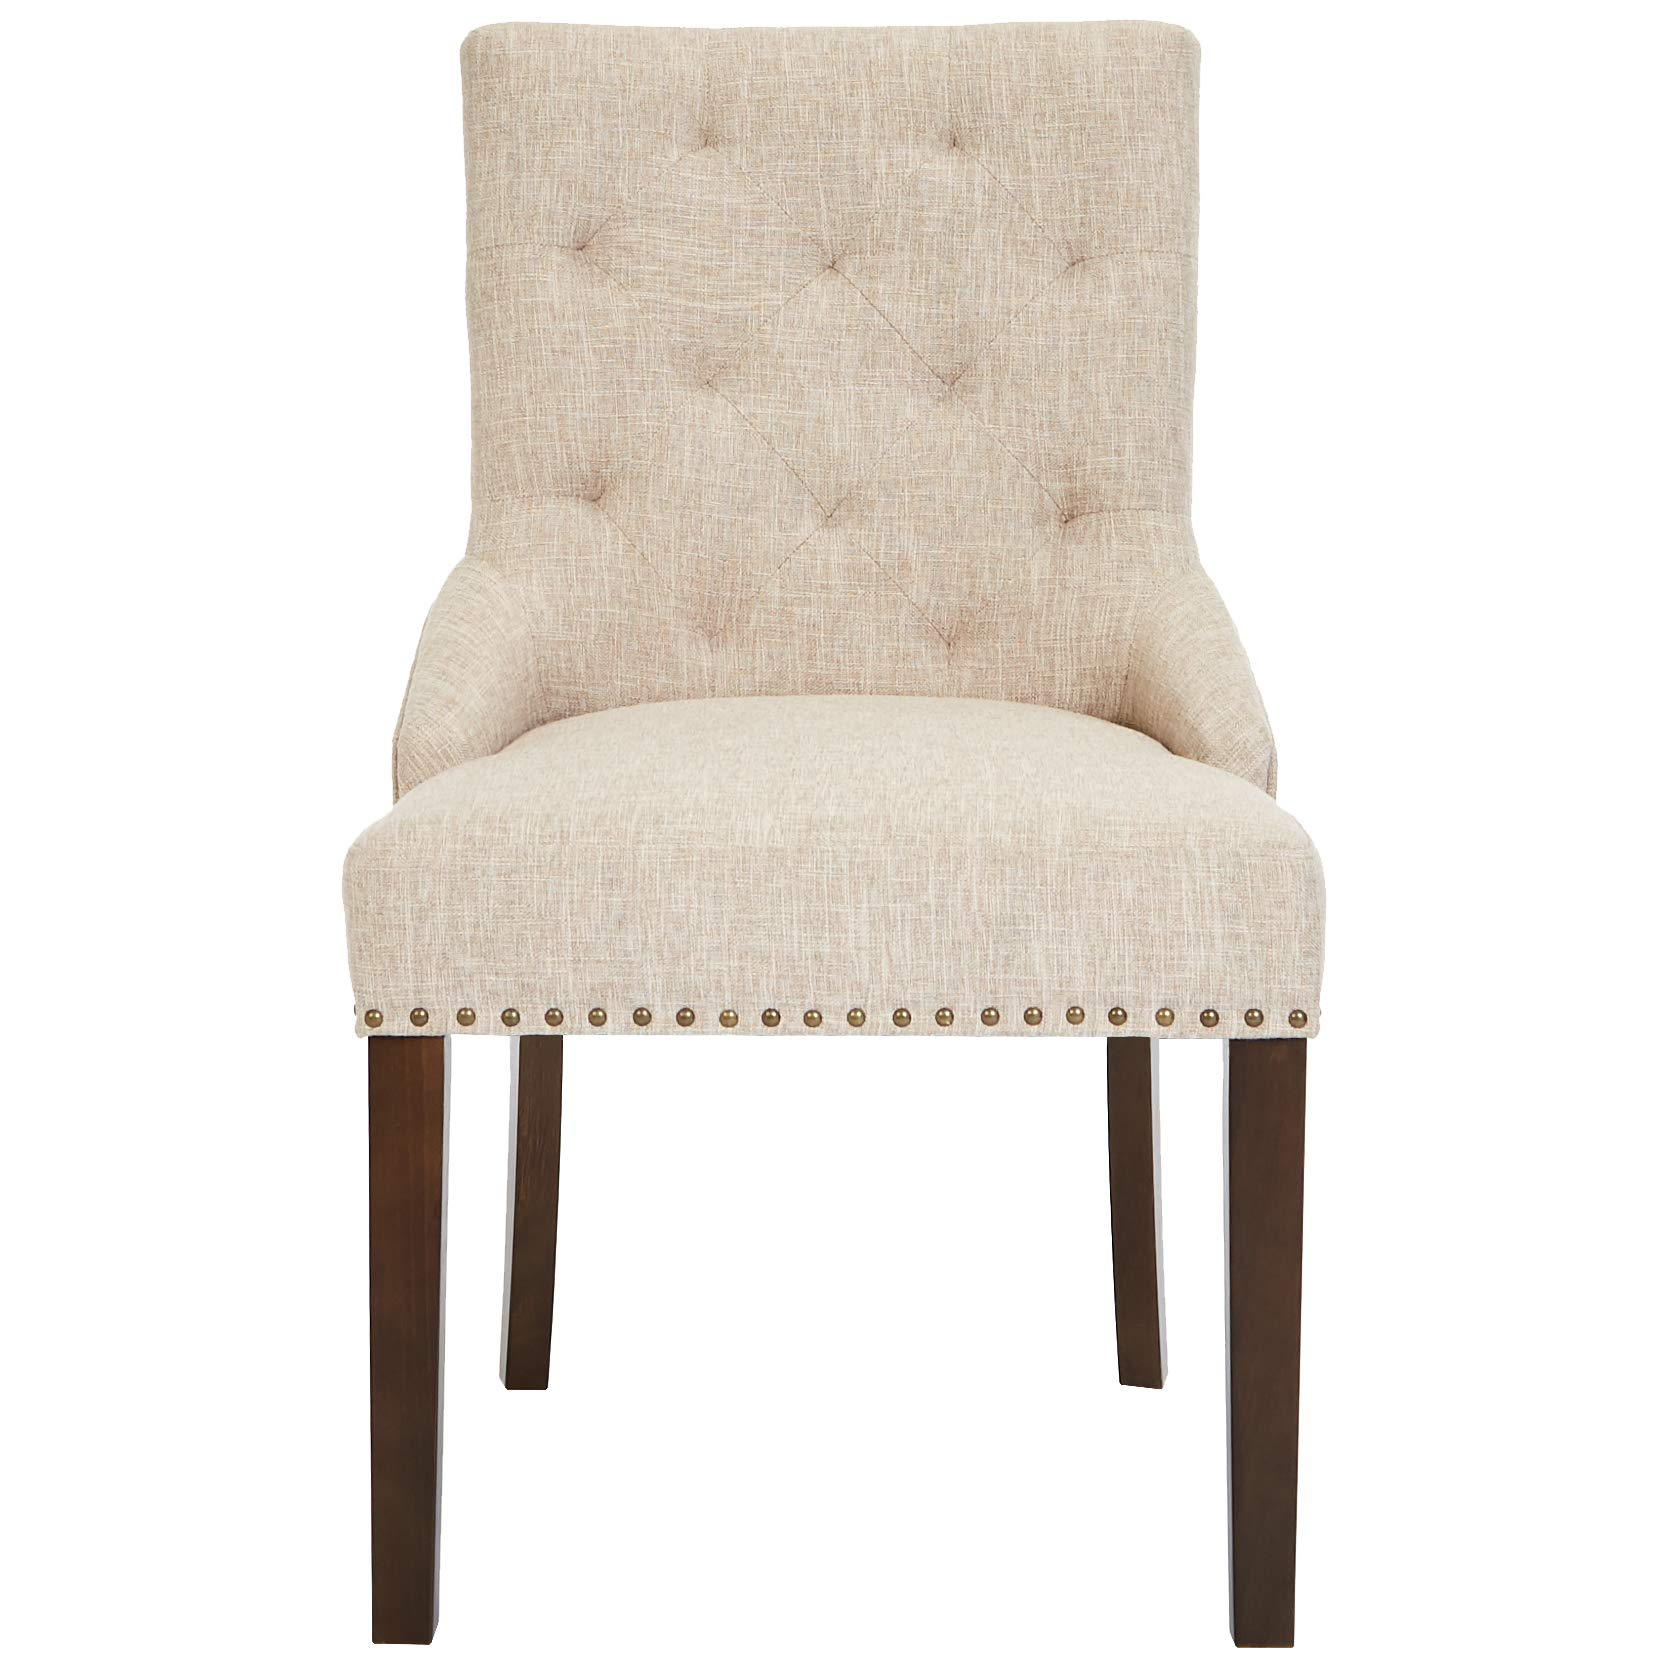 Red Hook Martil Upholstered Dining Chair with Nailhead Trim, Biscuit Beige, Set of 2 by Red Hook (Image #3)